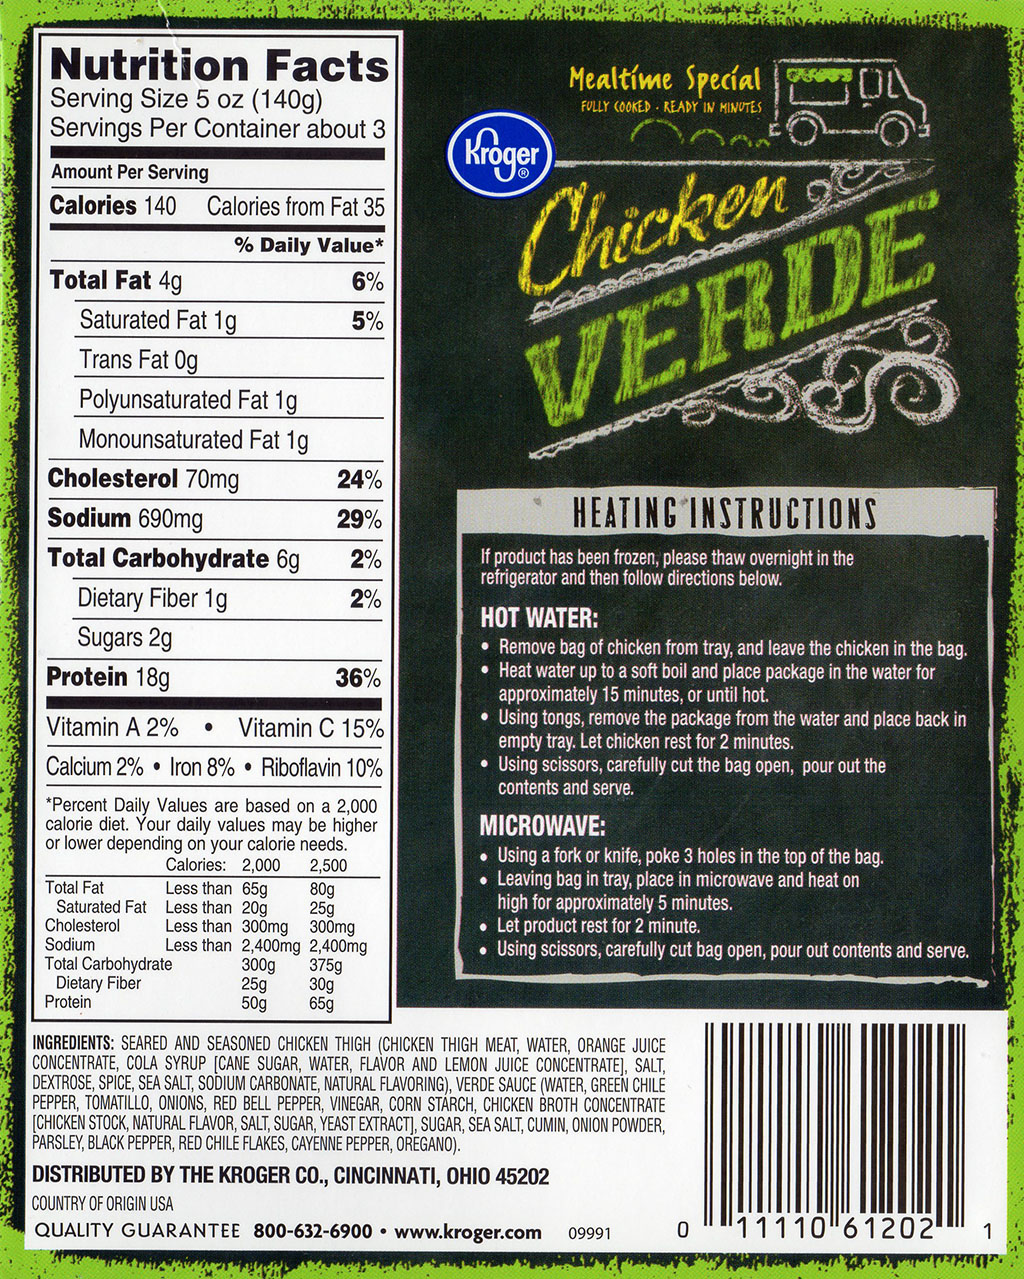 Kroger Chicken Verde cooking instructions, ingredients